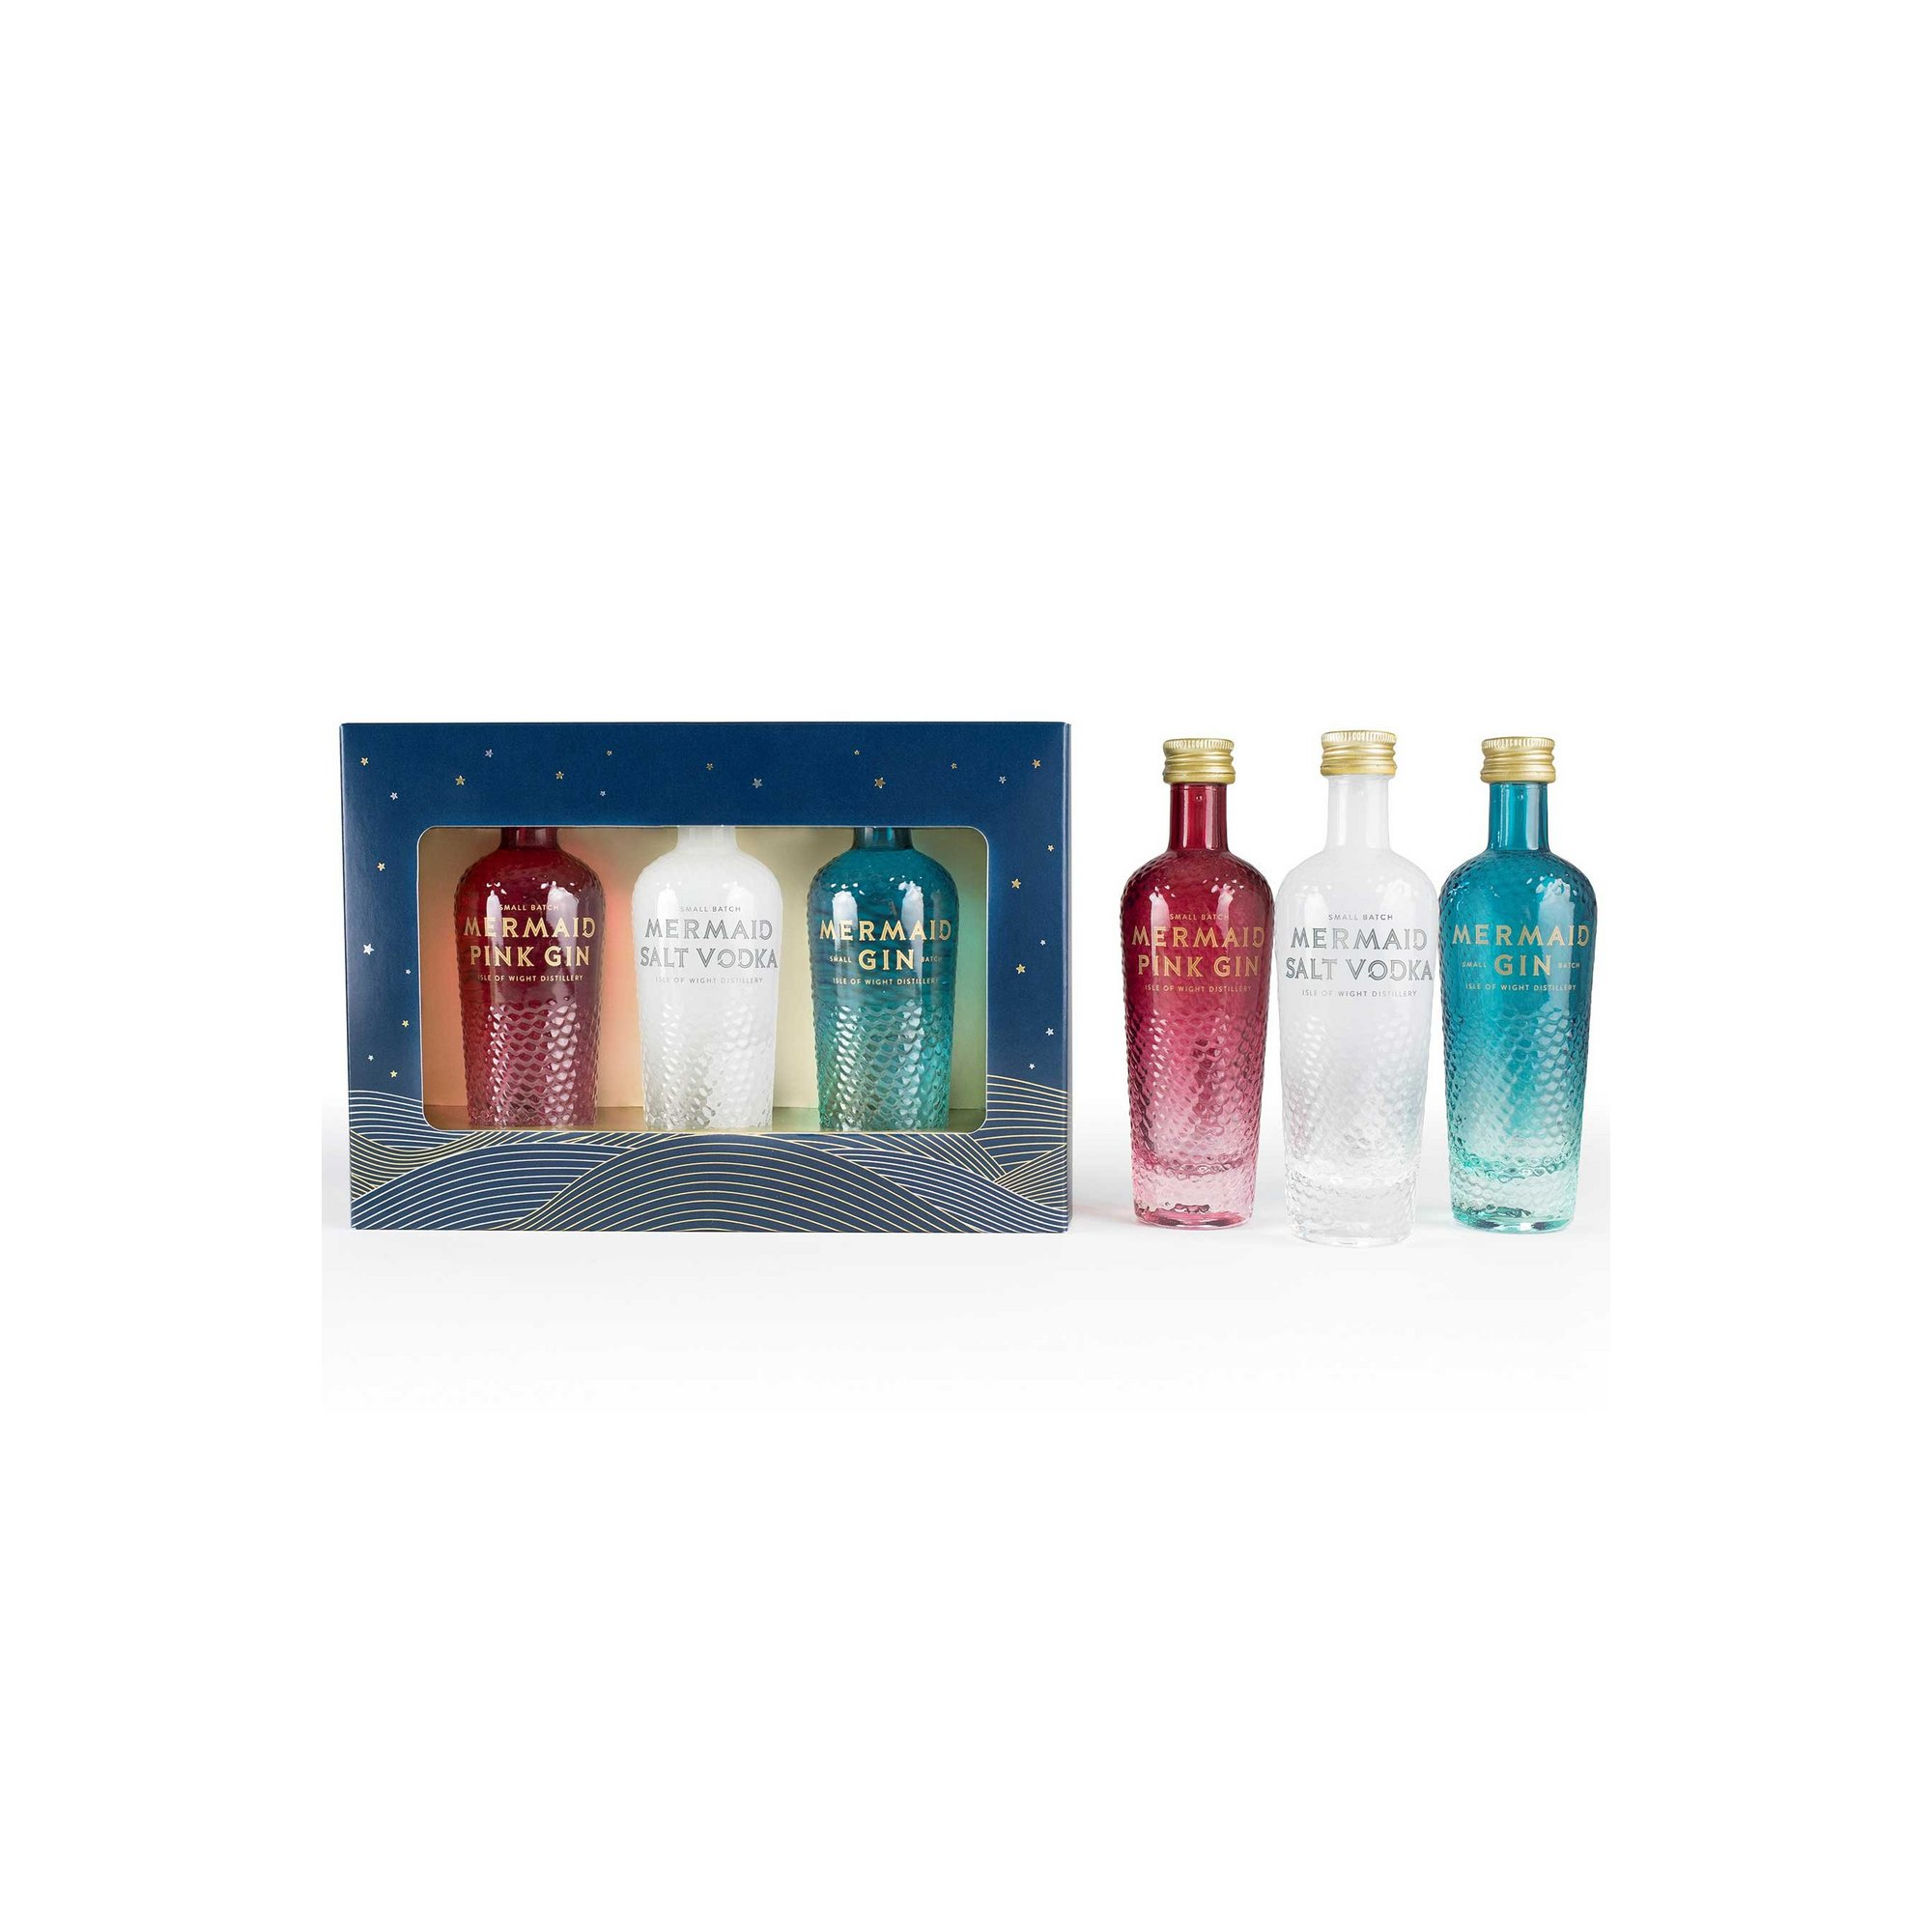 Image of Isle of Wight Distillery Mermaid Gin and Vodka Trio Gift Set